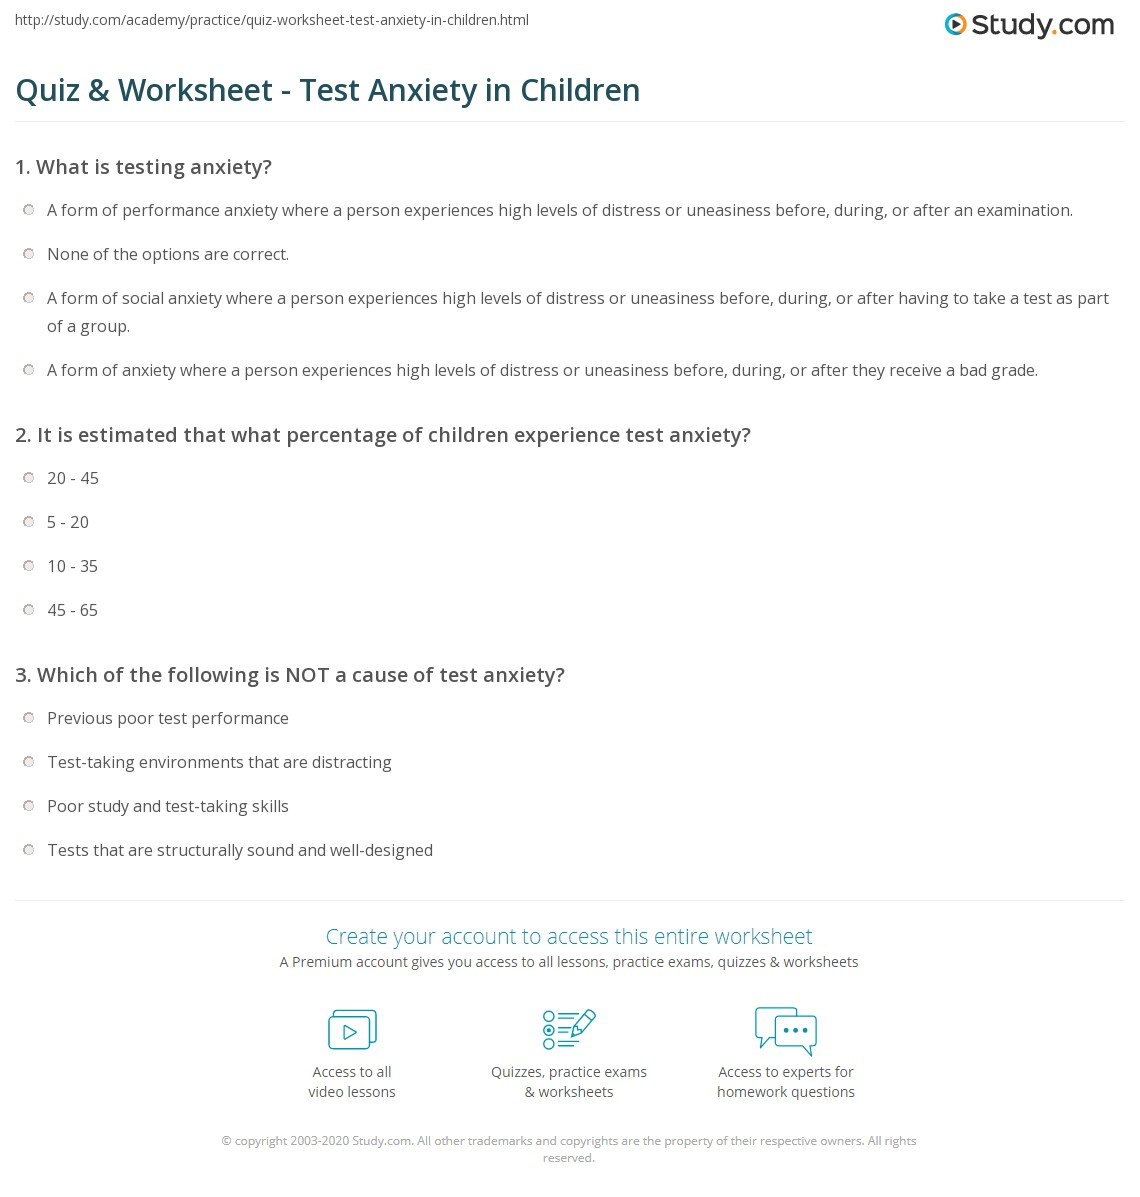 anxiety in children Dealing with anxiety in children – what adults can do to strengthen an anxious brain to thrive, we need to help our kids strengthen the connections horizontally – with the logical left brain and the emotional right brain working together, and vertically – with the rational front brain and the instinctive lower brain working together.